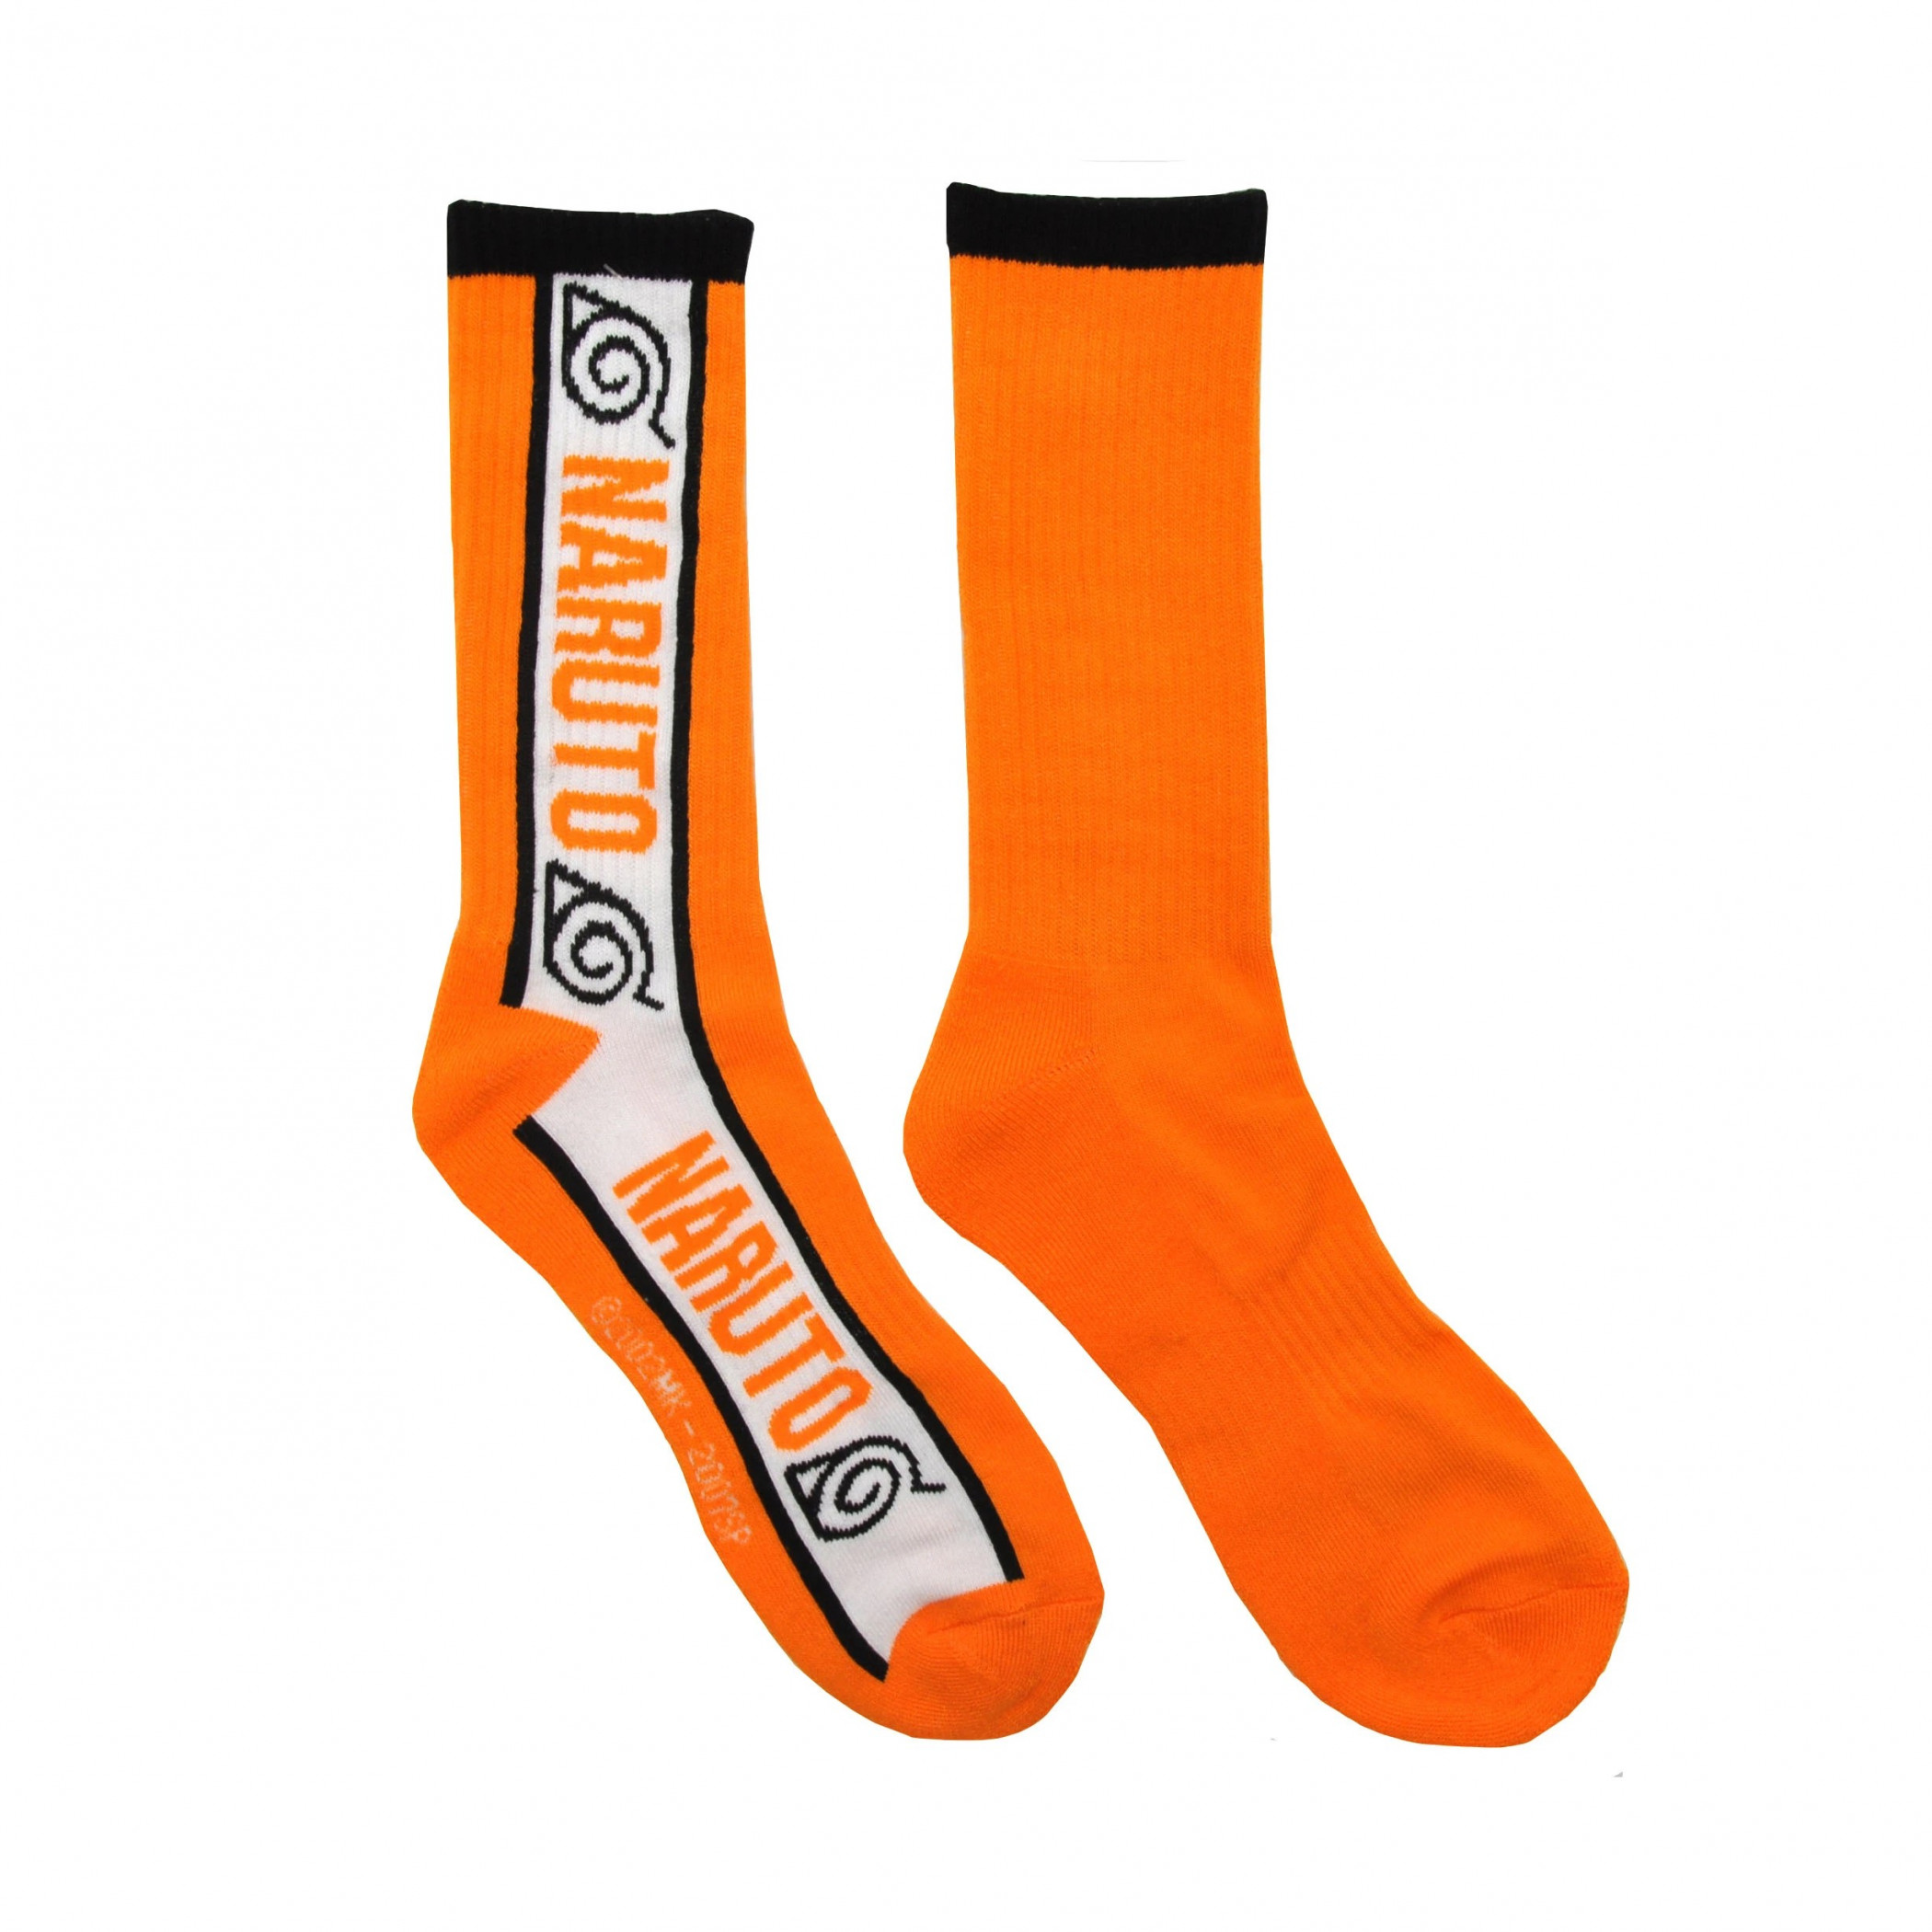 Naruto Shippuden Hidden Leaf Village Symbols Athletic Crew Socks